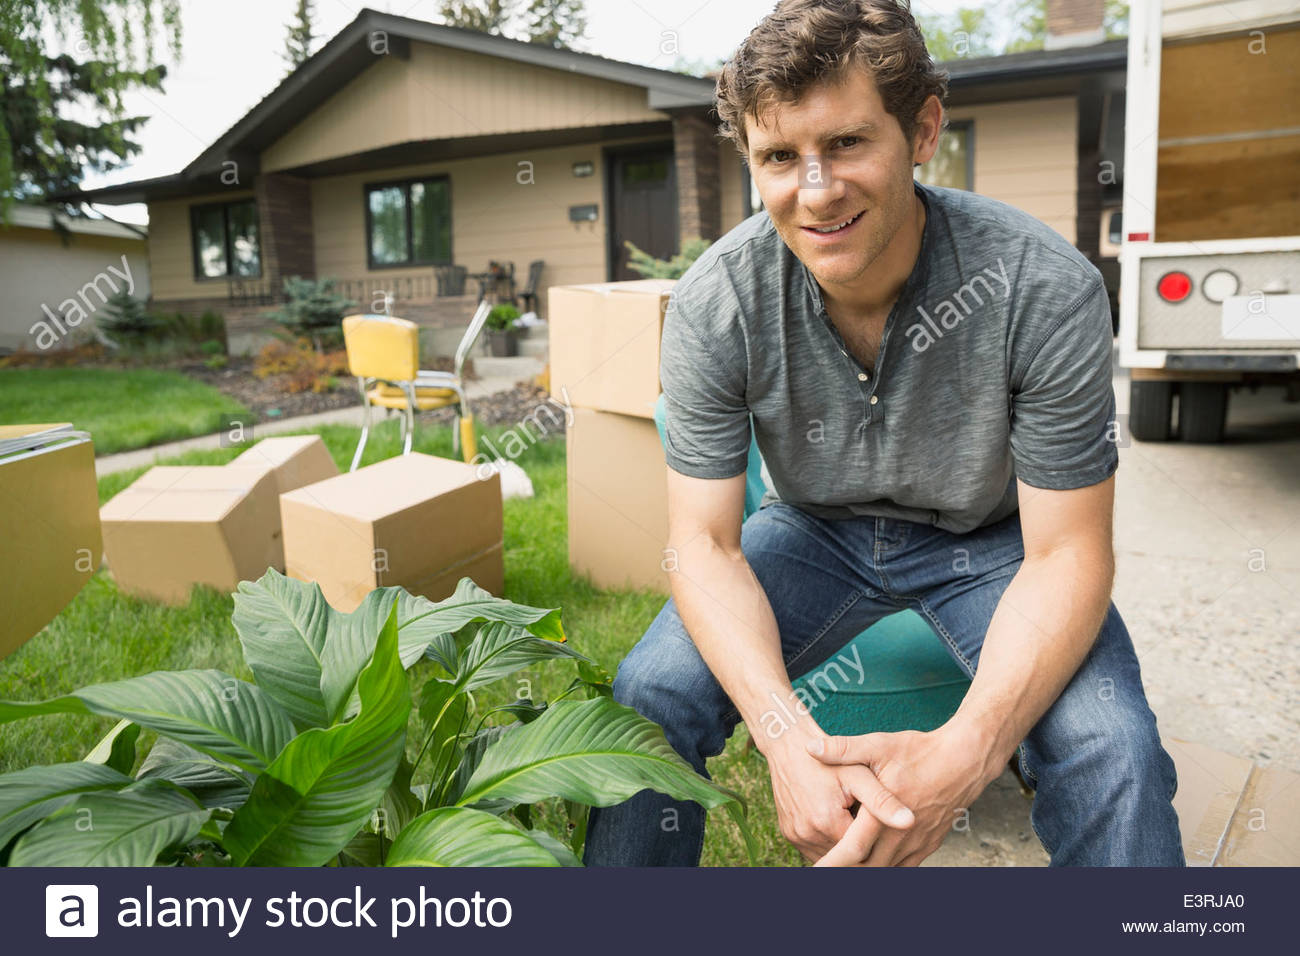 Portrait of confident man sitting outside moving van - Stock Image